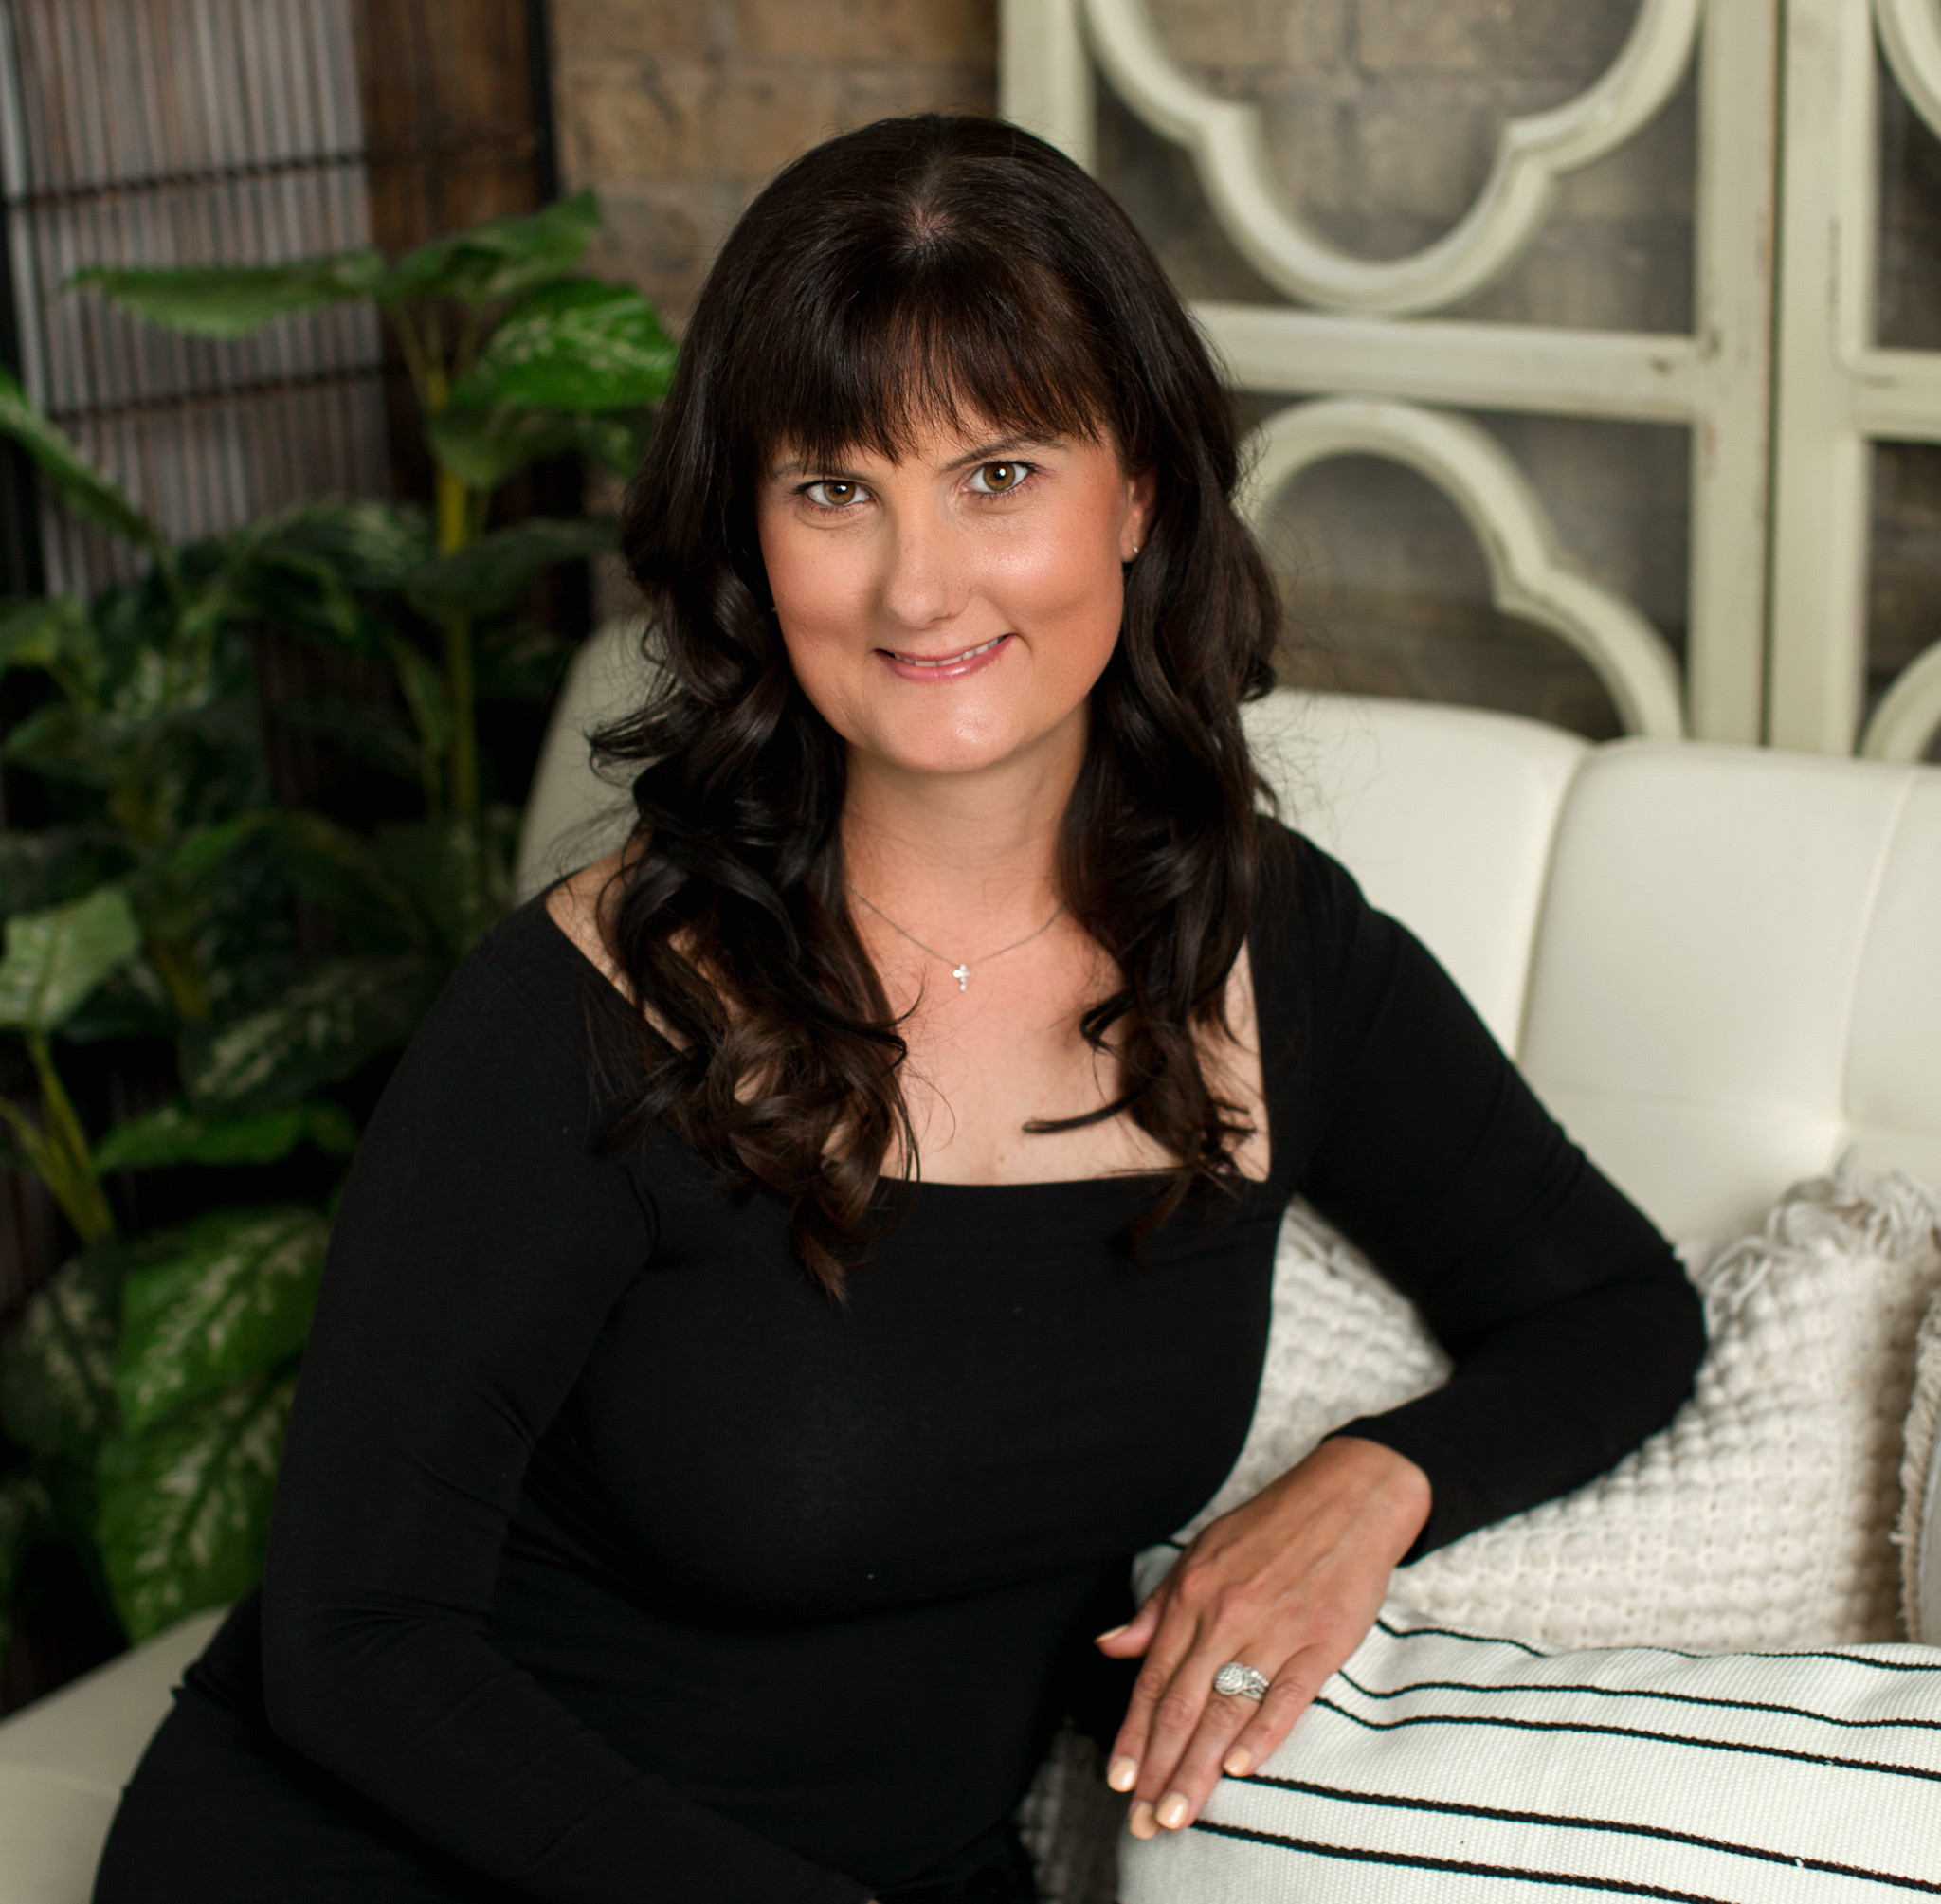 Reelika Schulte of Dream Lifestyle LLC Reveals The 5 Steps to Building the Coaching Business and Life of Your Dreams